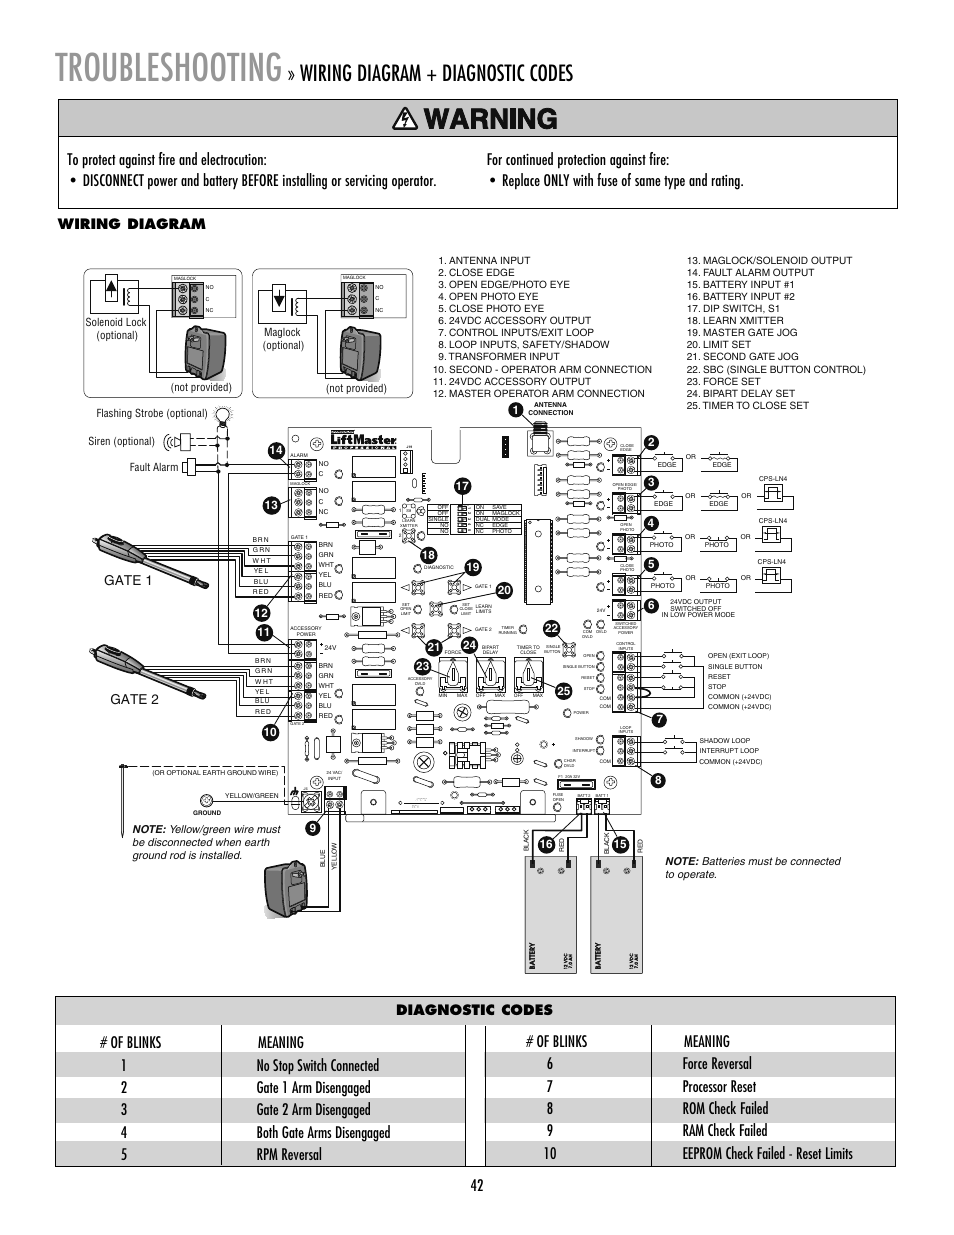 Jog Switch Wiring Diagram Library Dc 10 Diagnostic Codes Troubleshooting Liftmaster La400 Residential Linear Gate Operator User